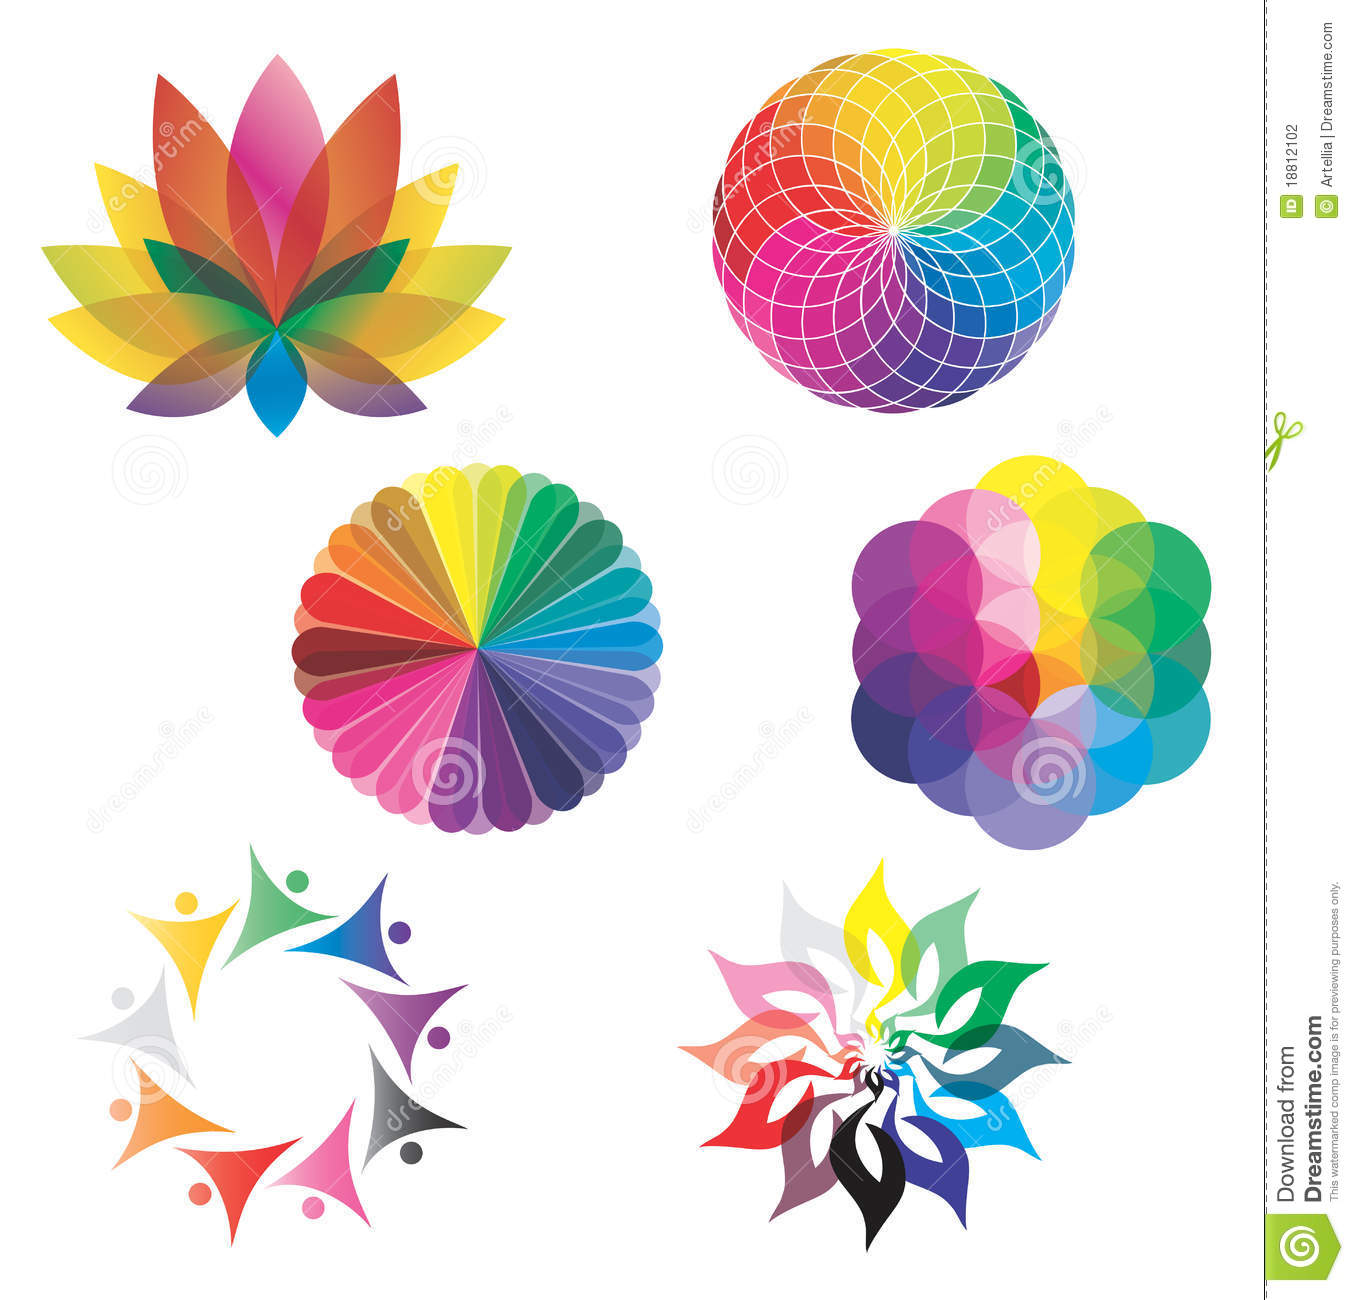 Creative Color Wheel Flower